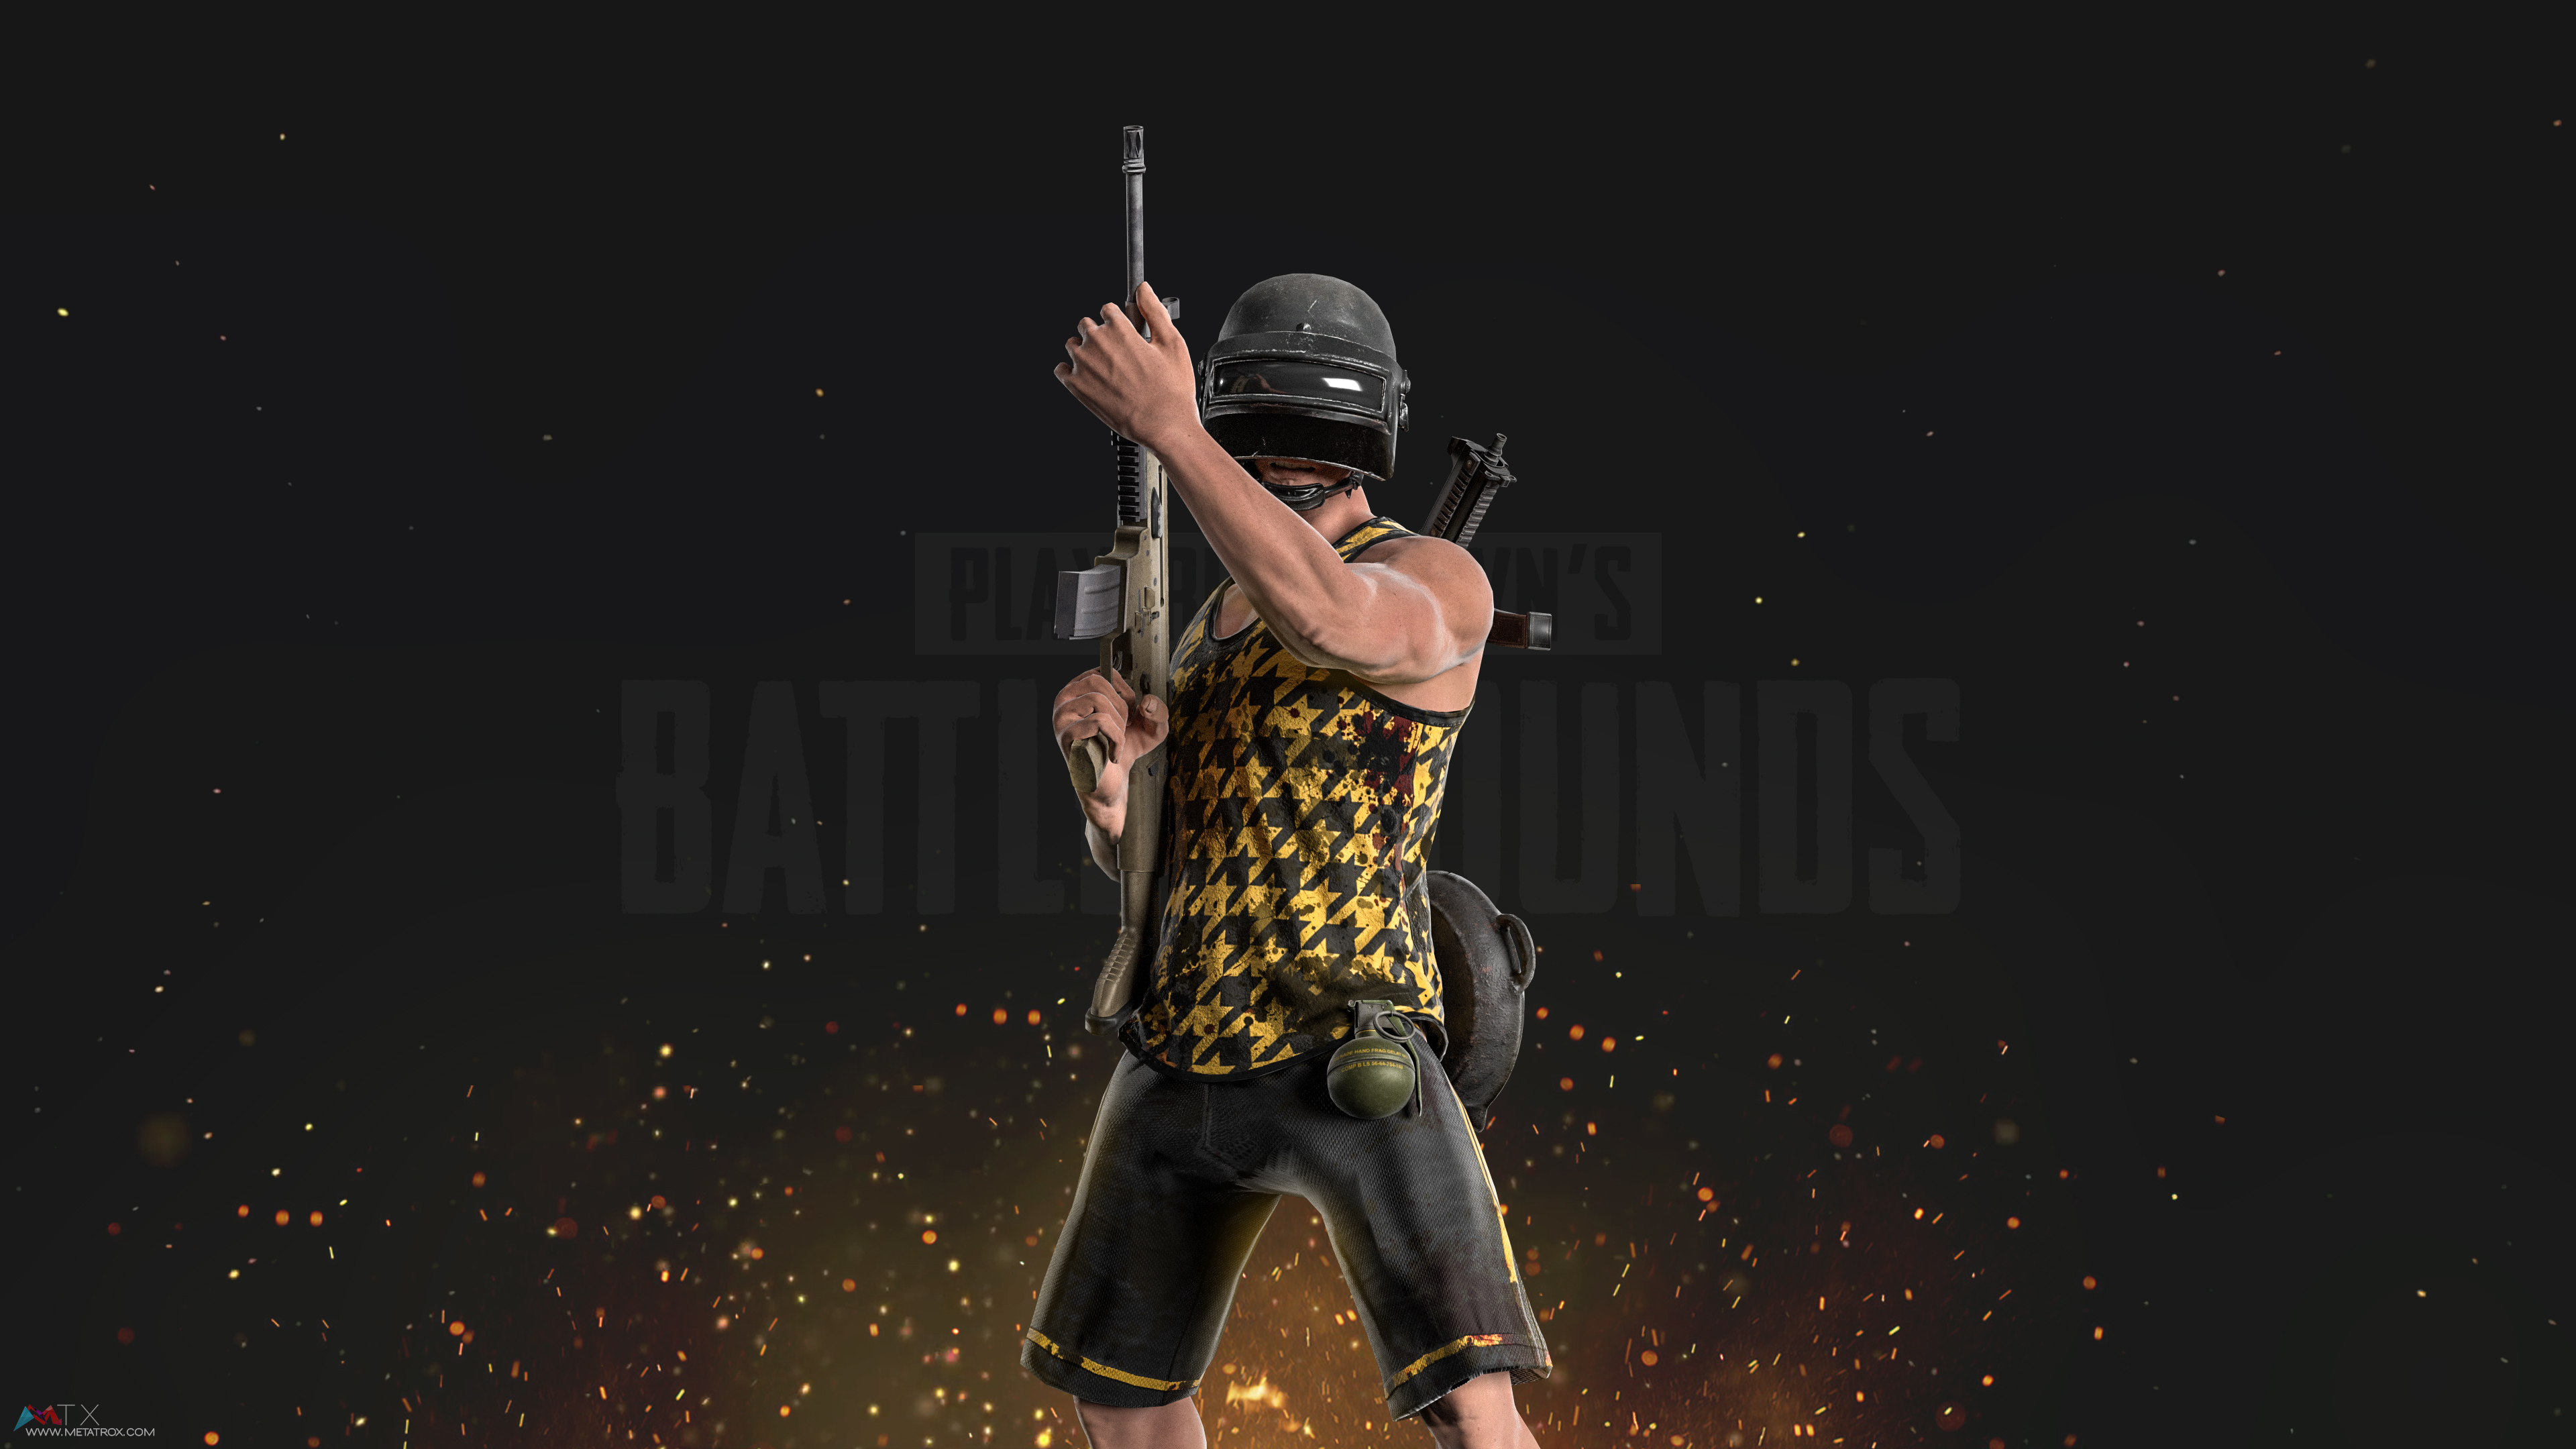 Pubg Wallpaper 4k Mobile: Pubg, HD Games, 4k Wallpapers, Images, Backgrounds, Photos